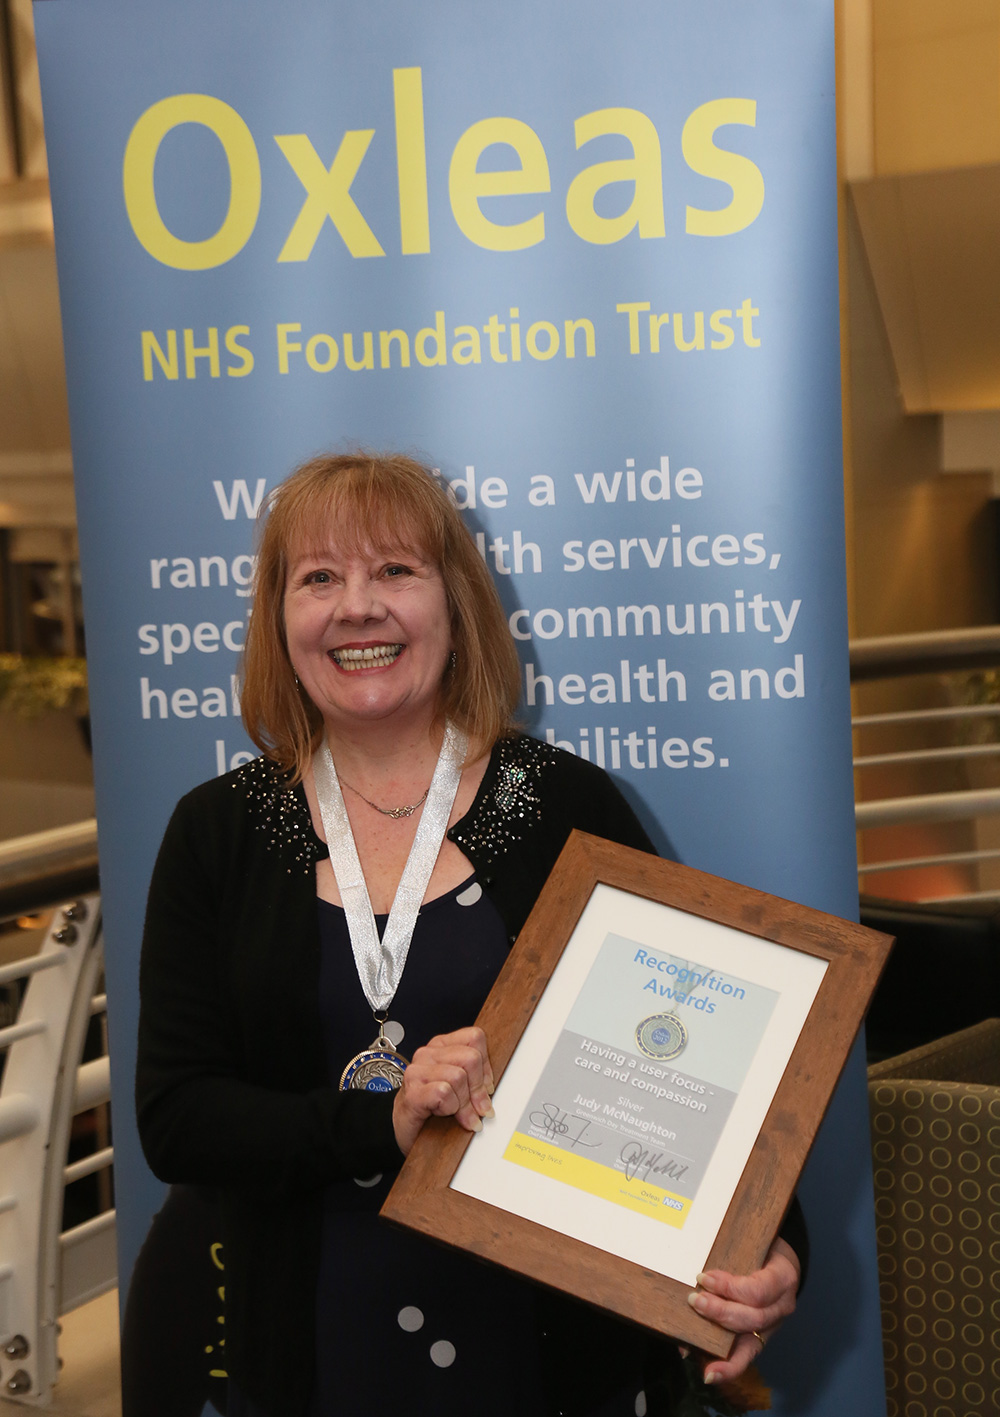 Staff Recognition Awards 2012: Having a user focus – care and compassion Silver: Judy McNaughton, Greenwich Day Treatment Team, Oxleas House